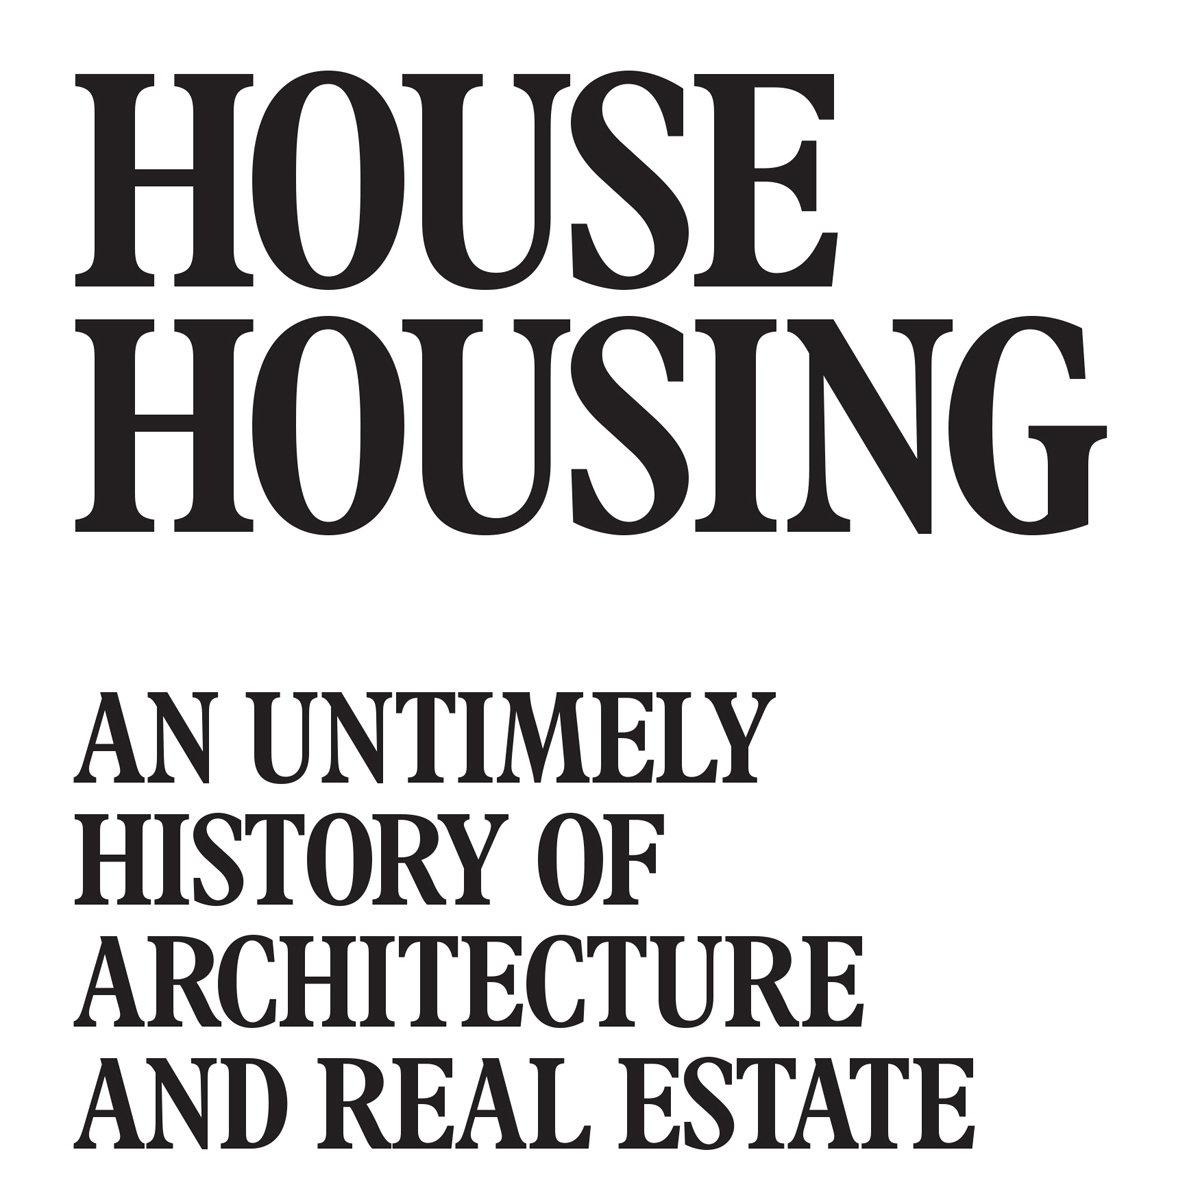 House Housing - An Untimely History of Architecture and Real Estate